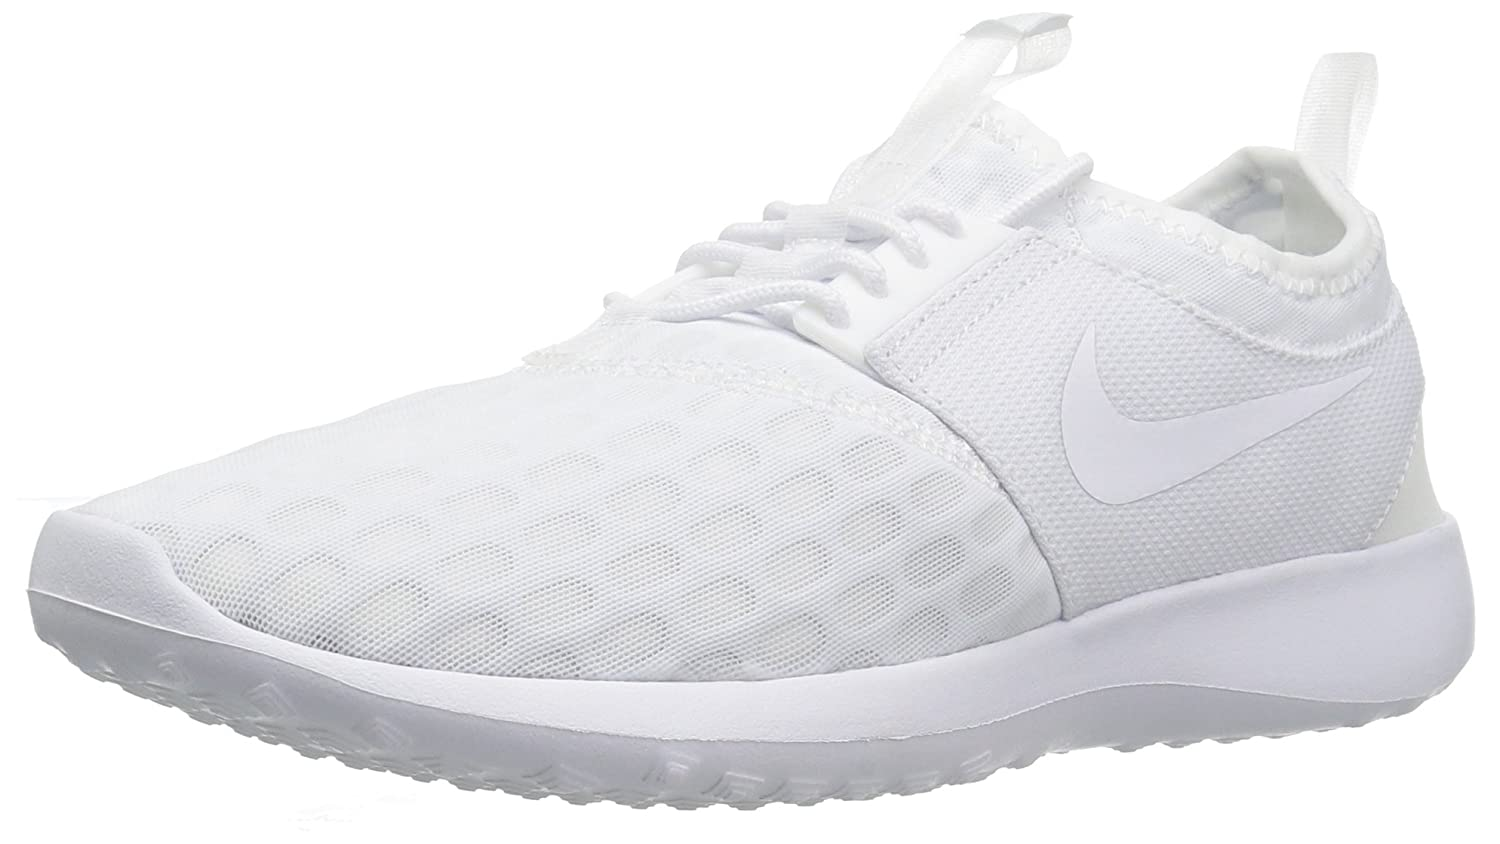 NIKE Women's Juvenate Running Shoe B006SKK8YE 6 B(M) US|White/White/White